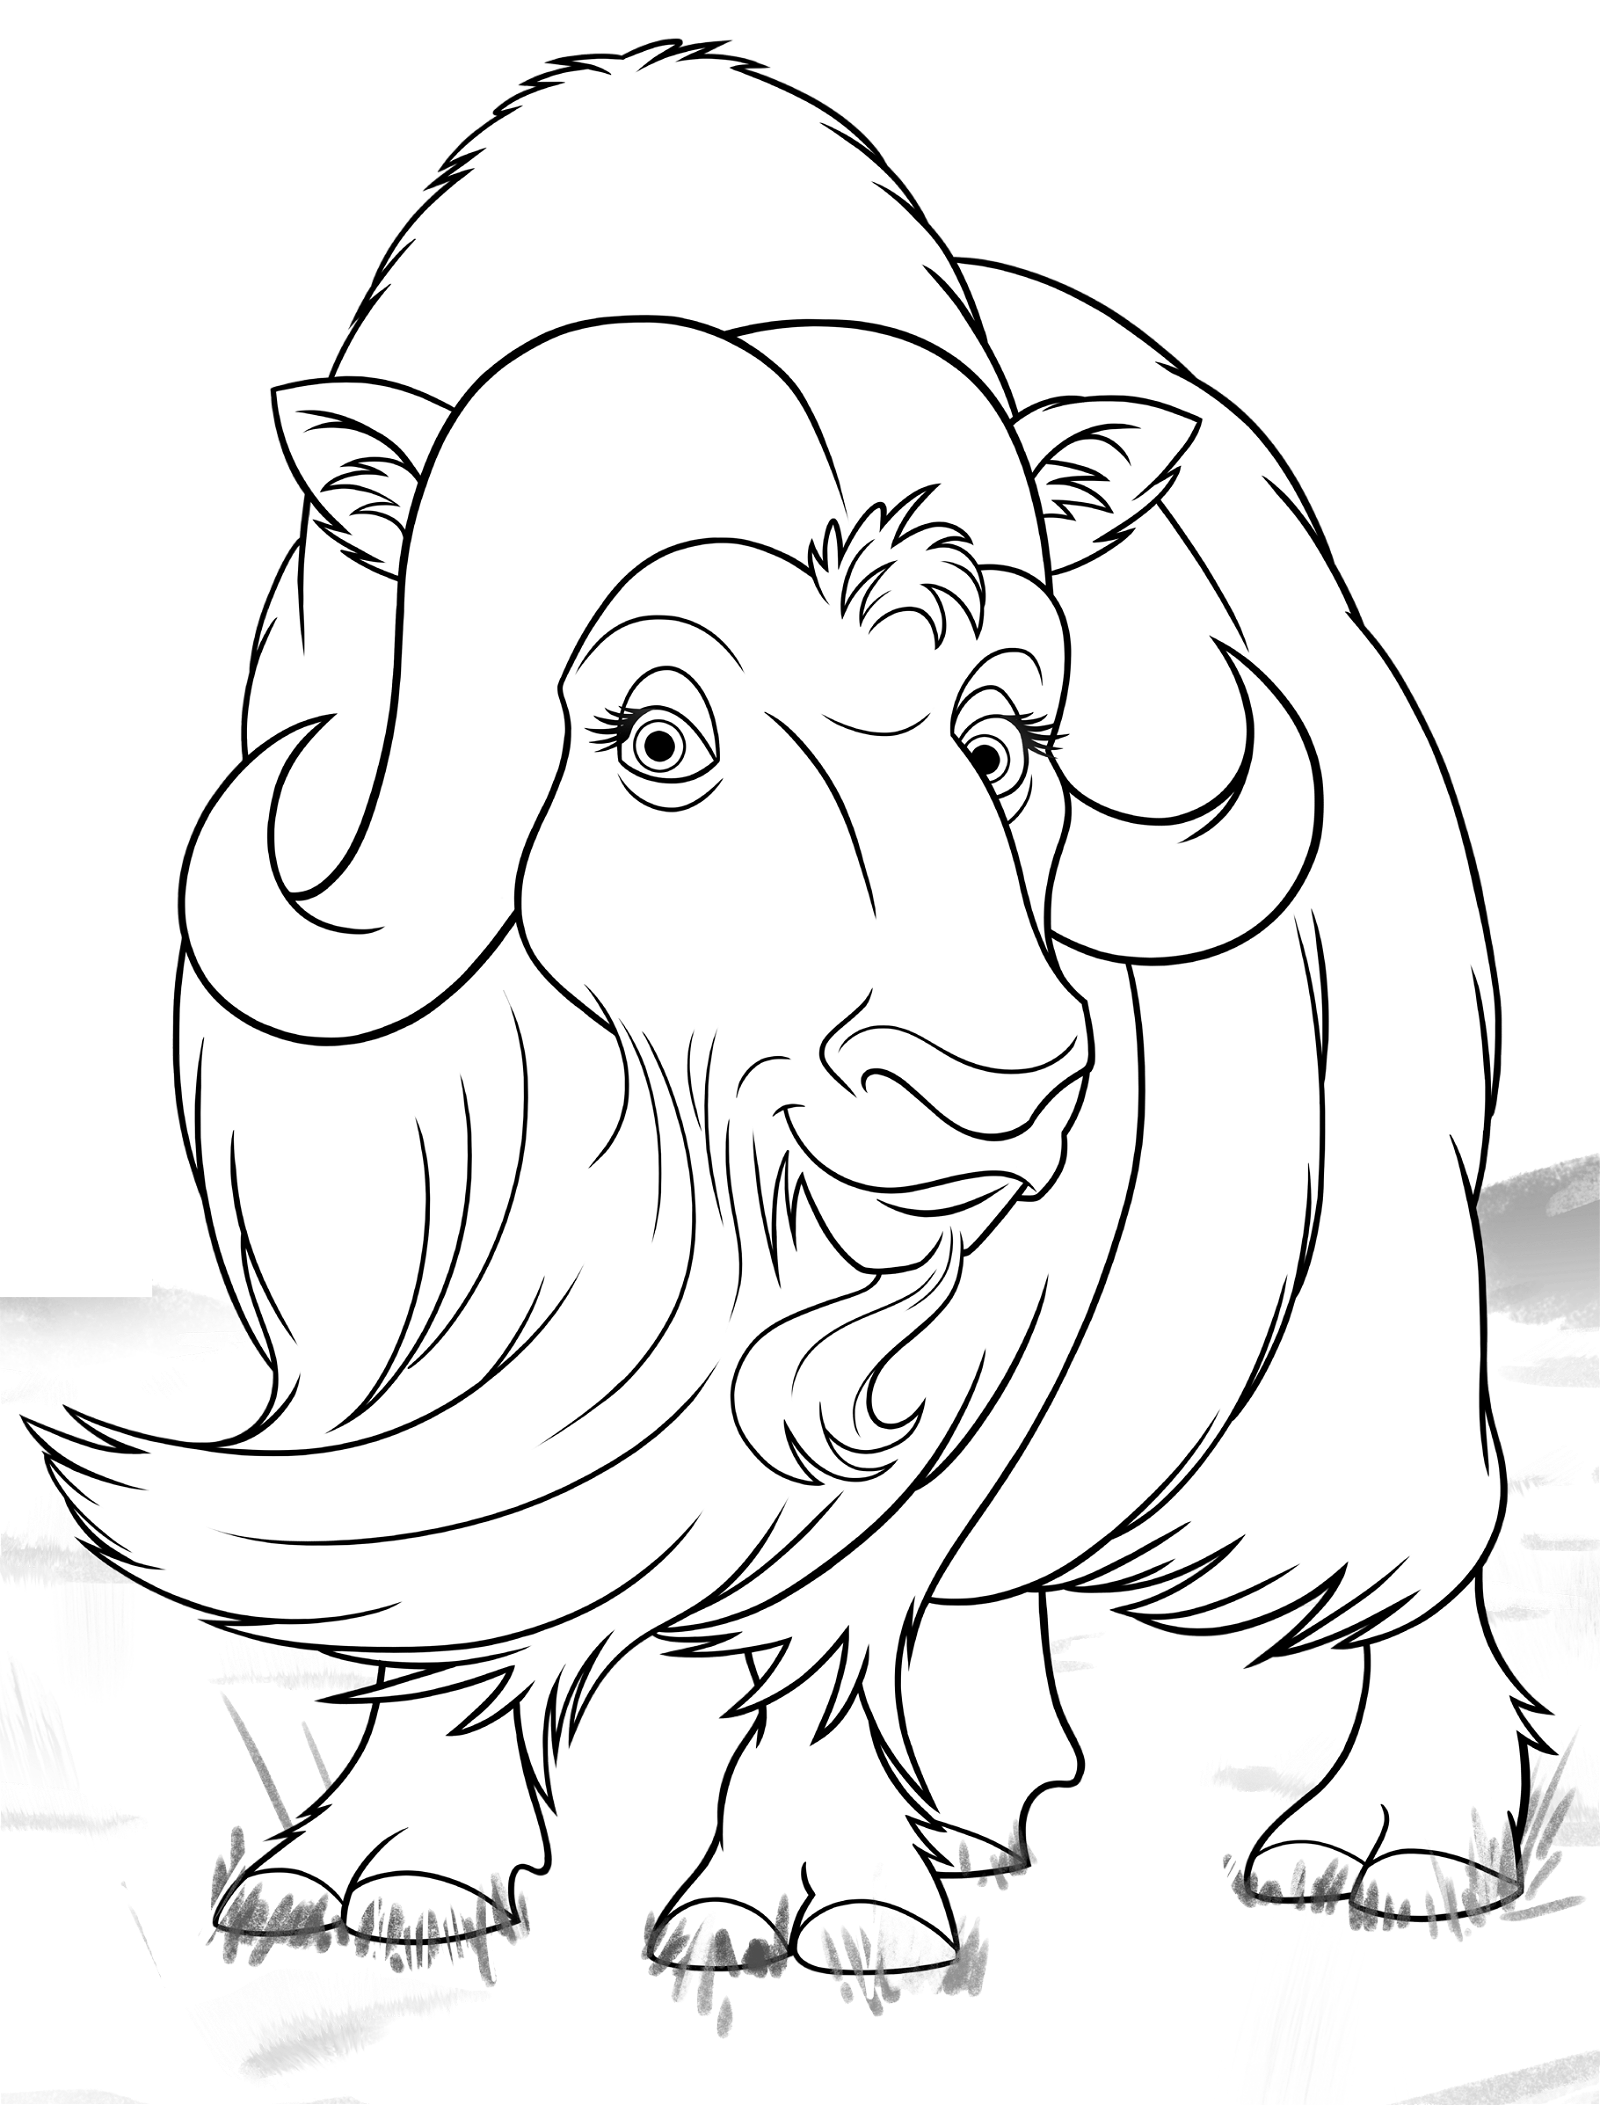 Shaggy the Musk Ox